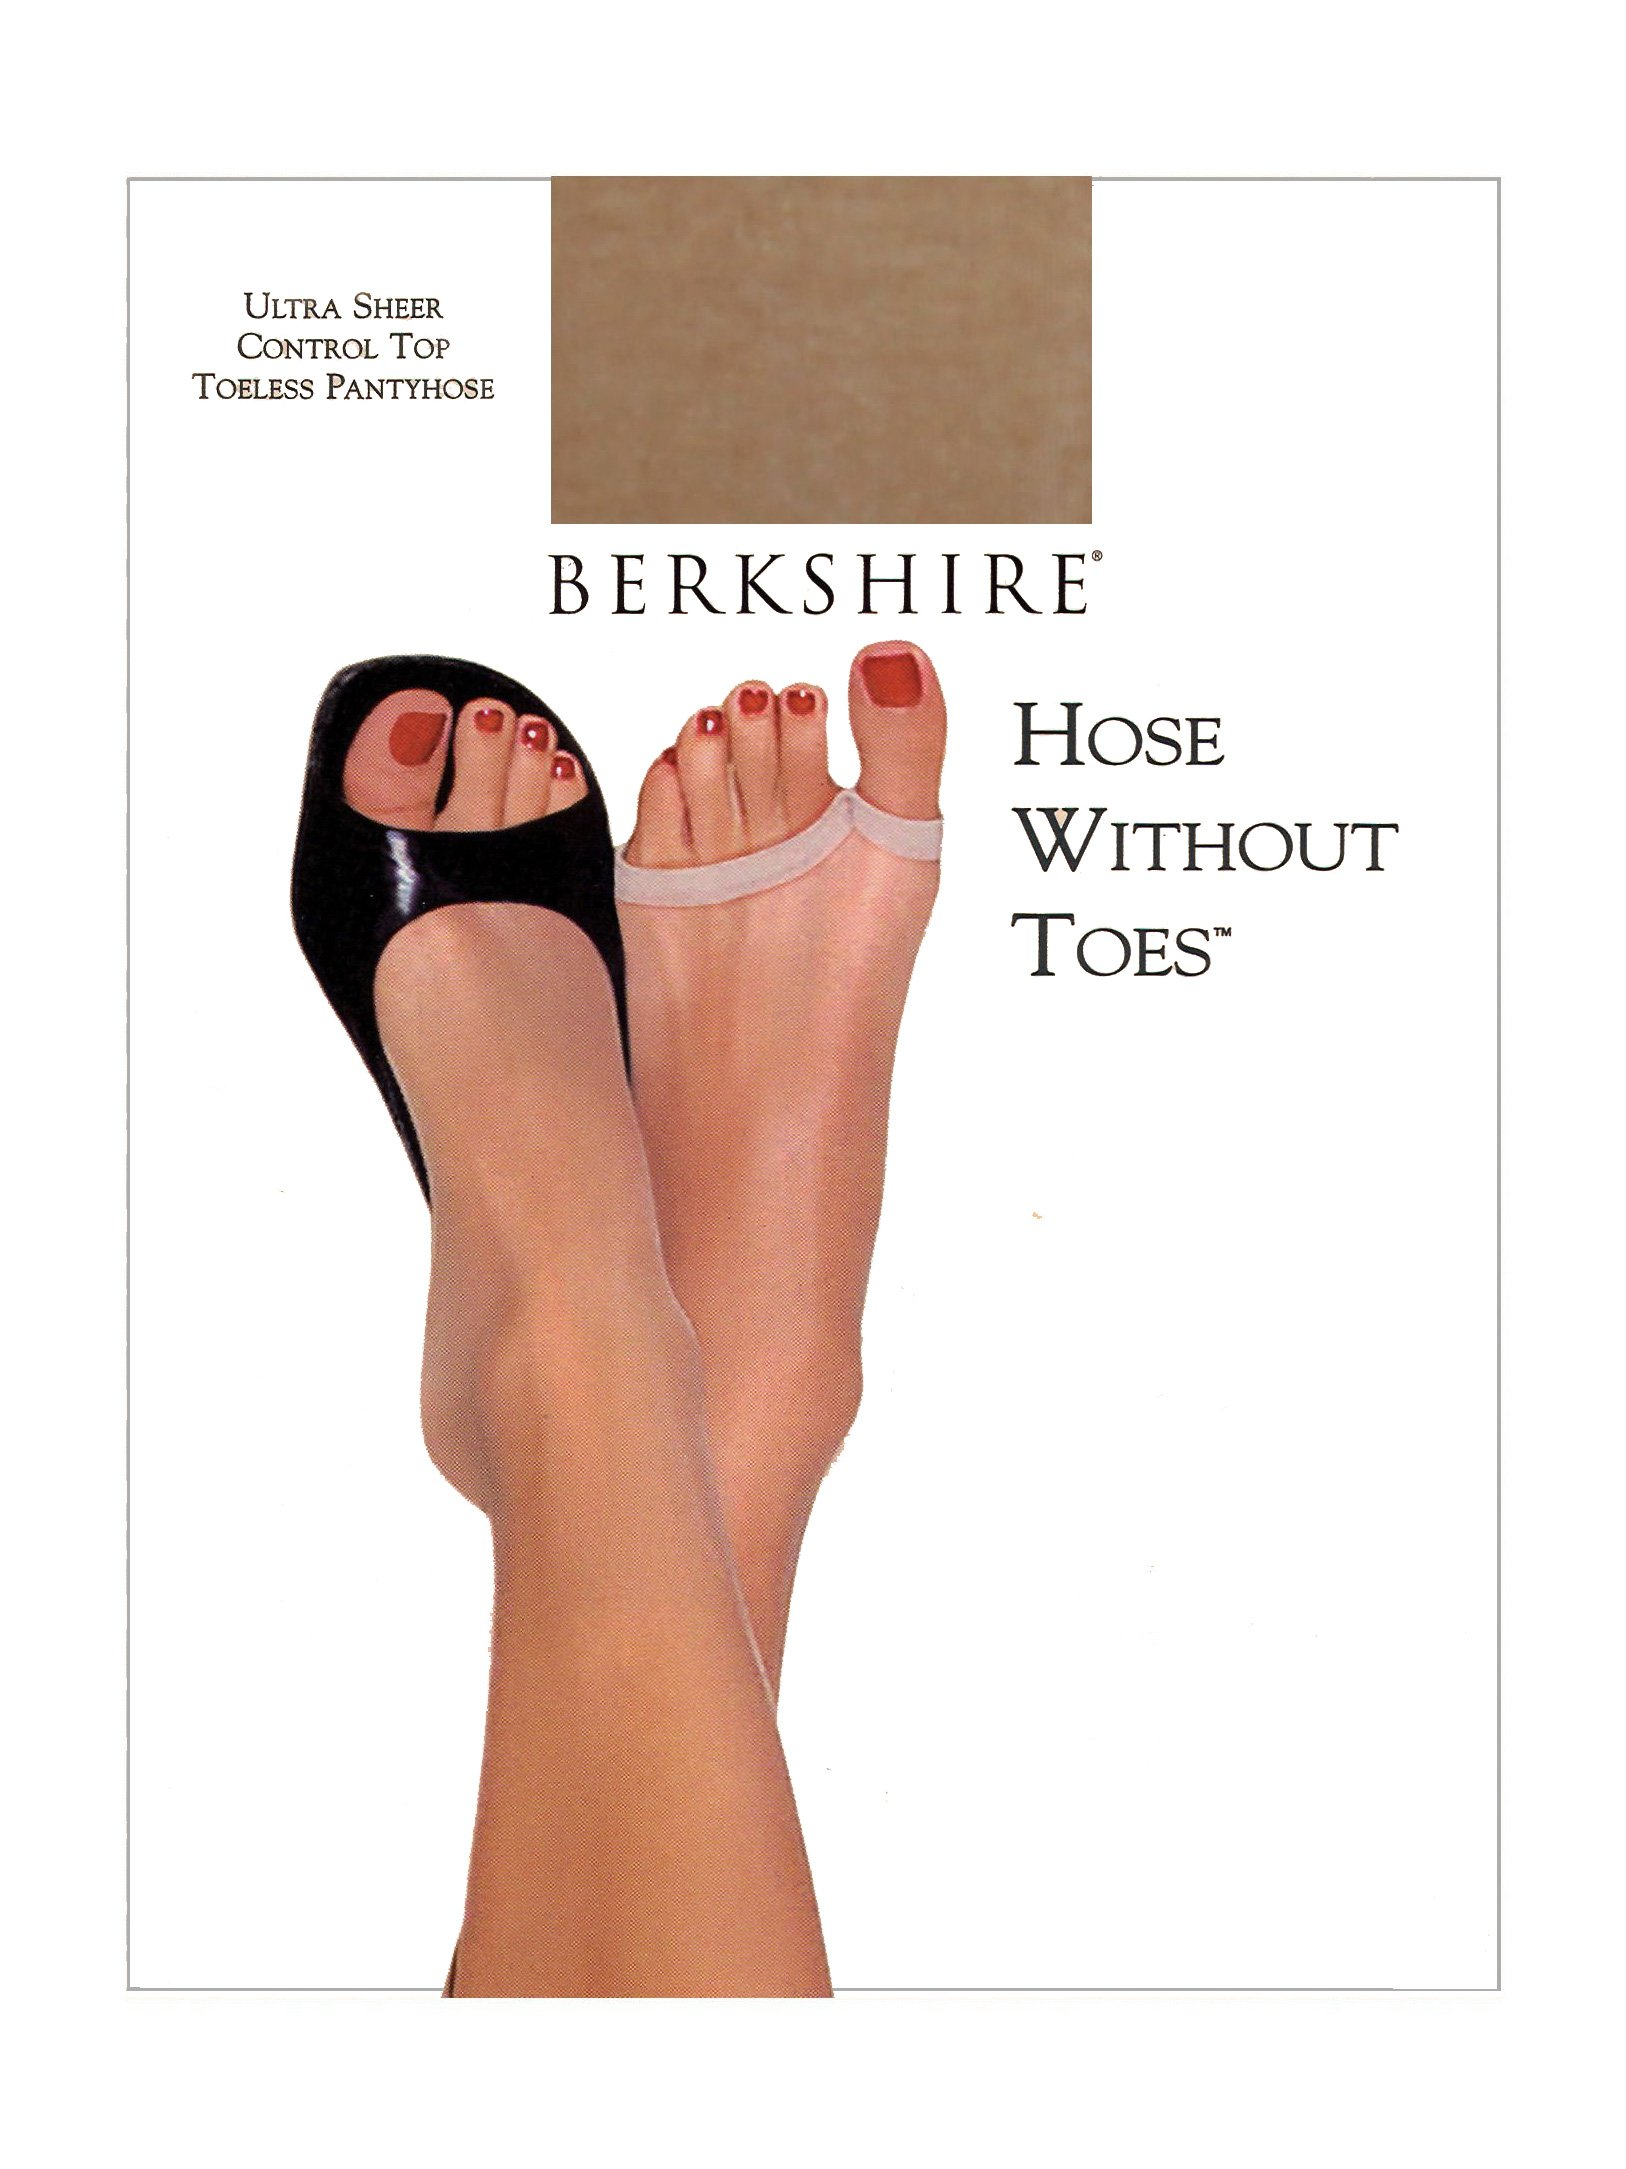 Berkshire Women's Hose Without Toes Ultra Sheer Control Top Pantyhose, Utopia, 2